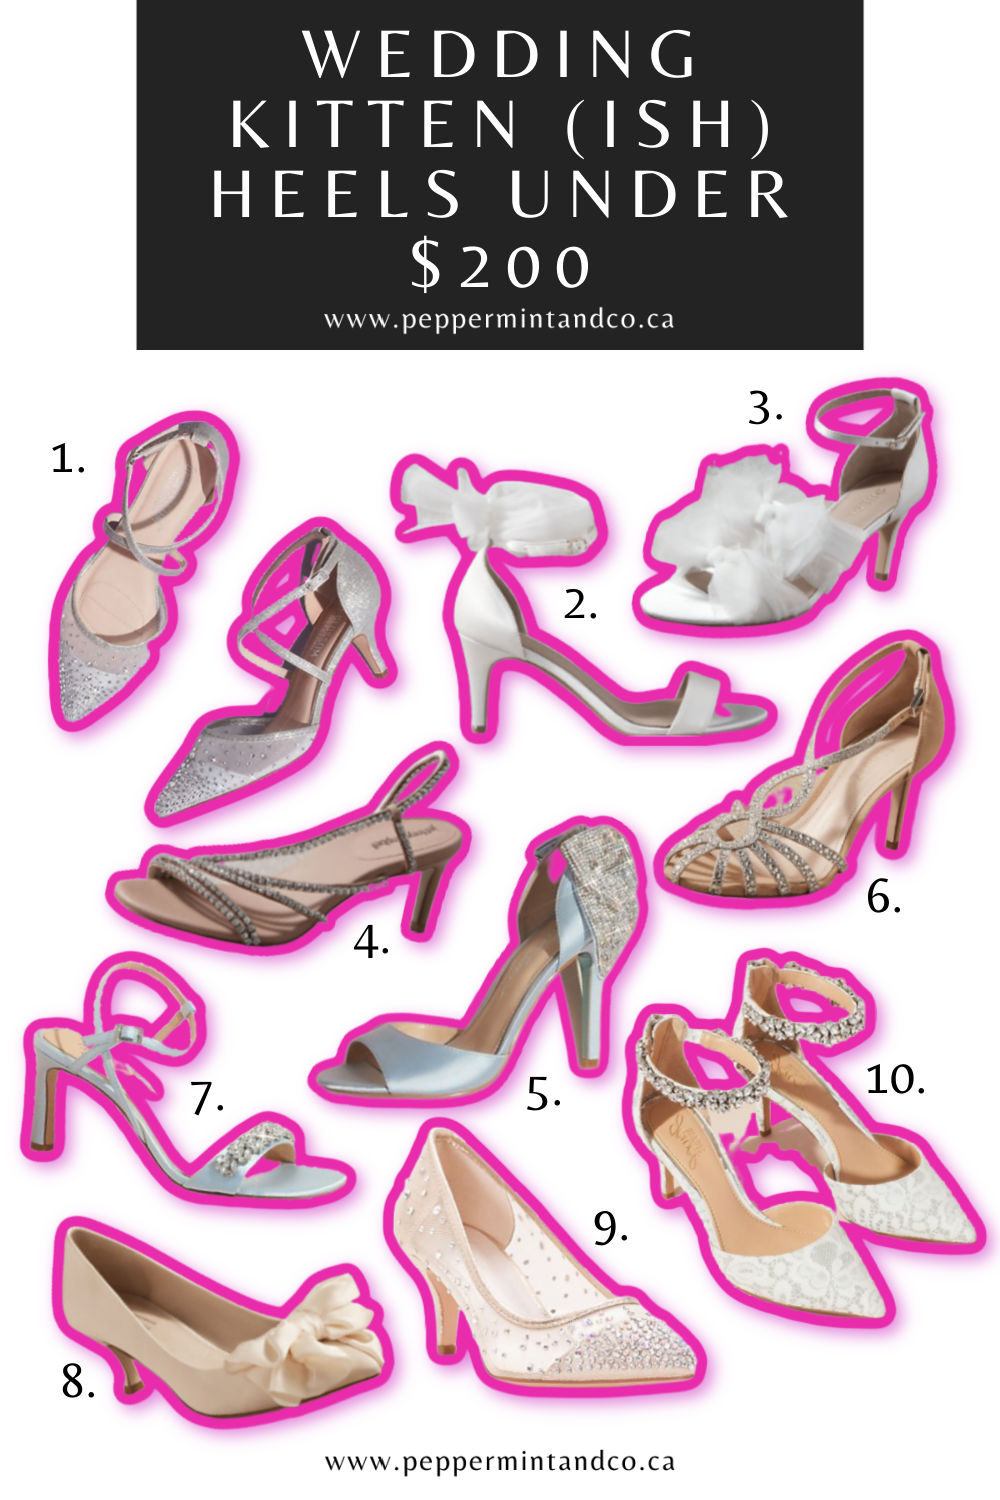 Wedding Kitten (ish) Heels Under $200